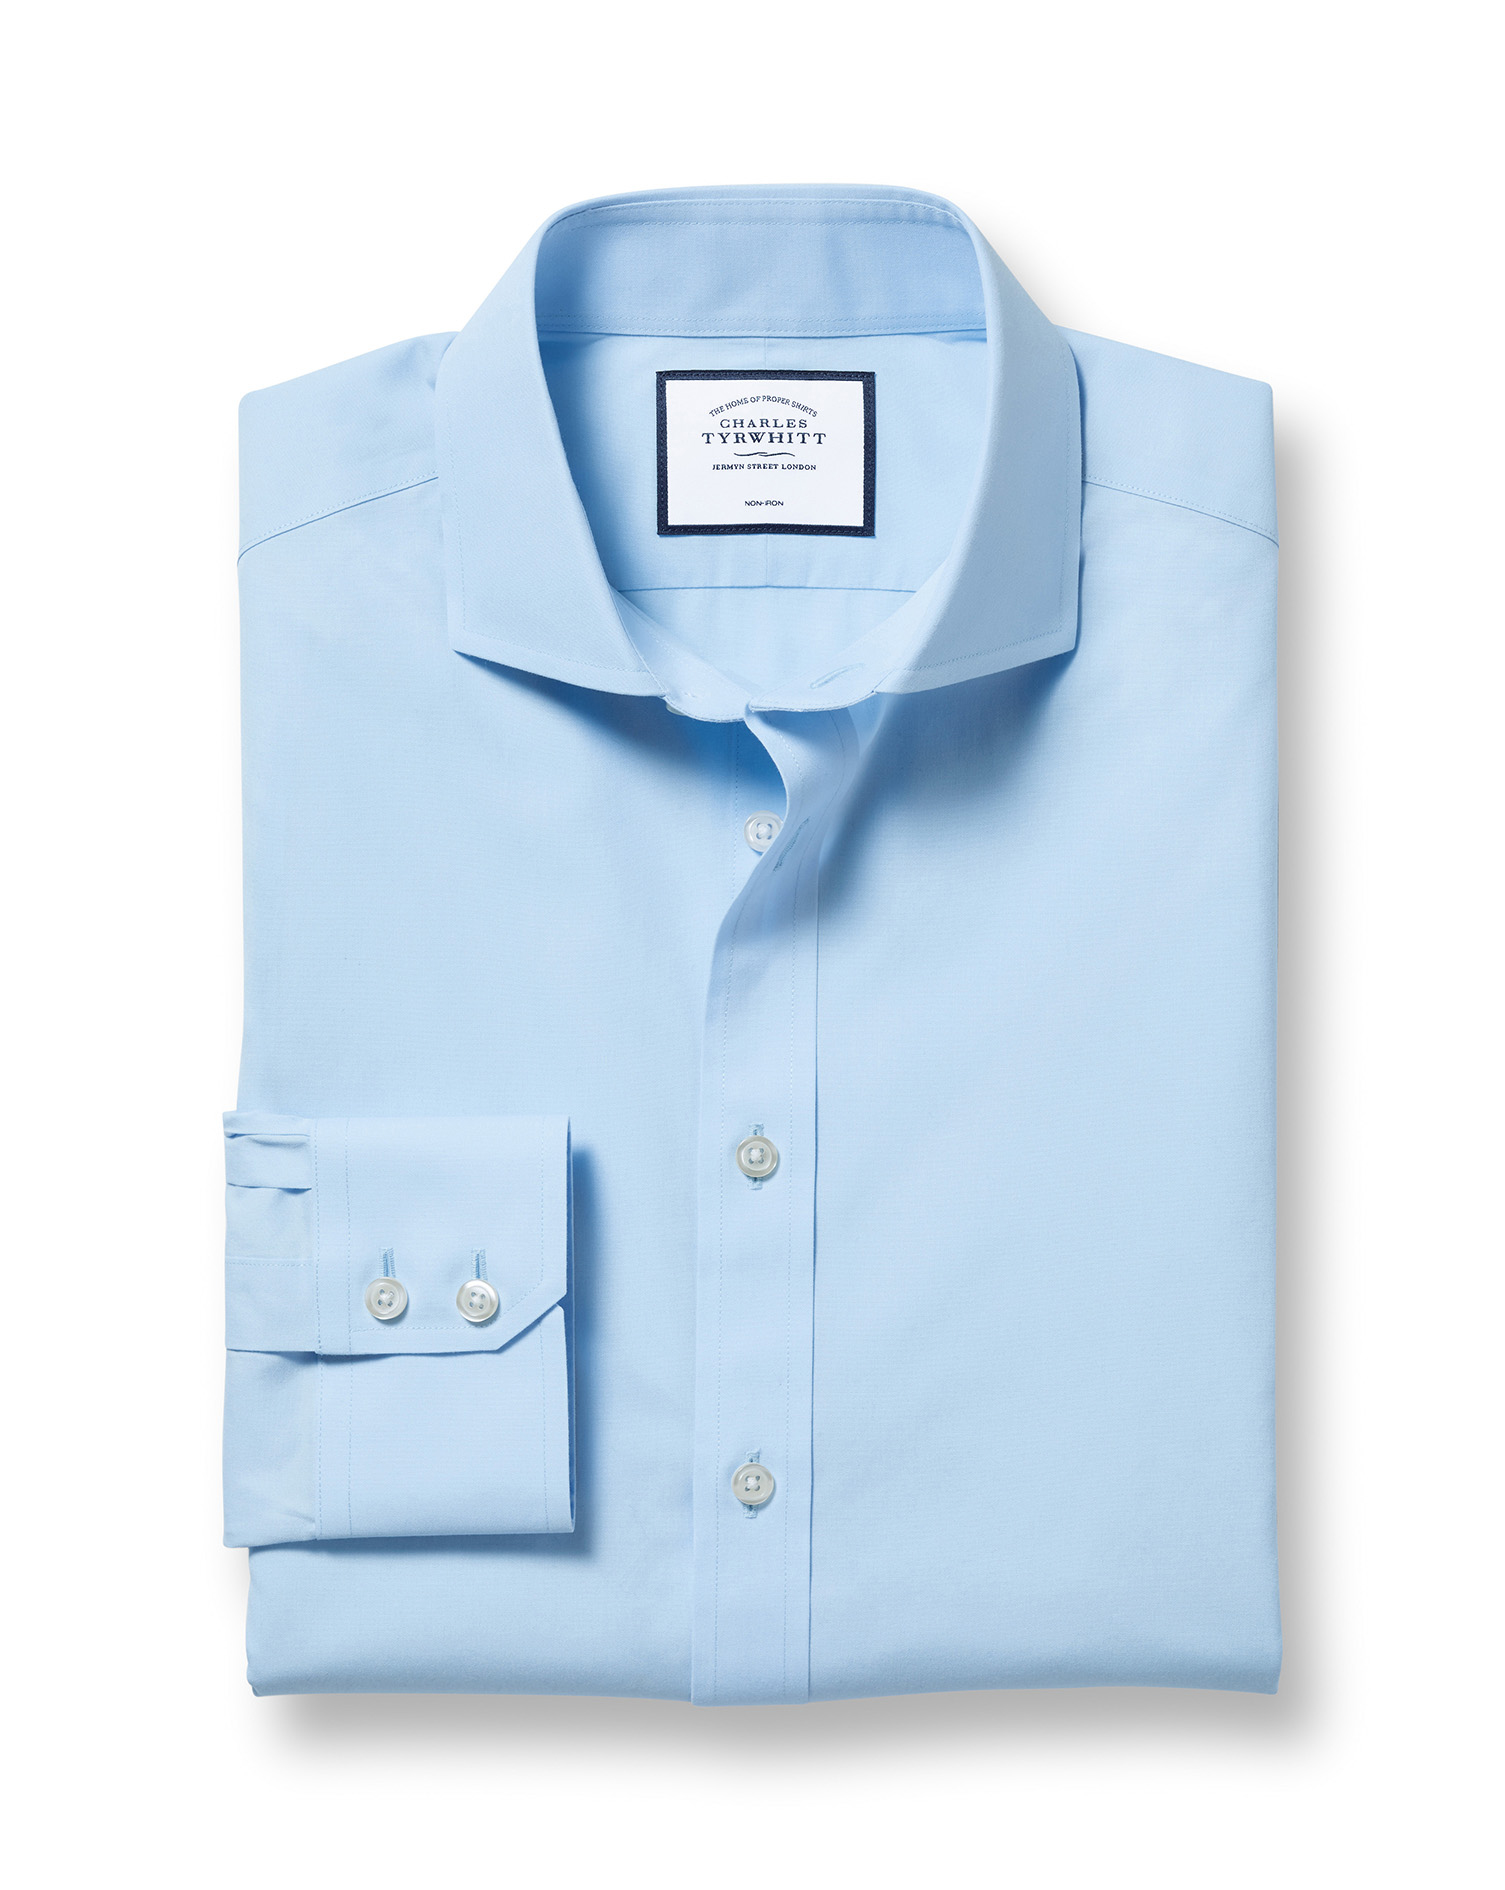 Extra Slim Fit Sky Blue Non-Iron Poplin Cutaway Collar Cotton Formal Shirt Double Cuff Size 17/35 by